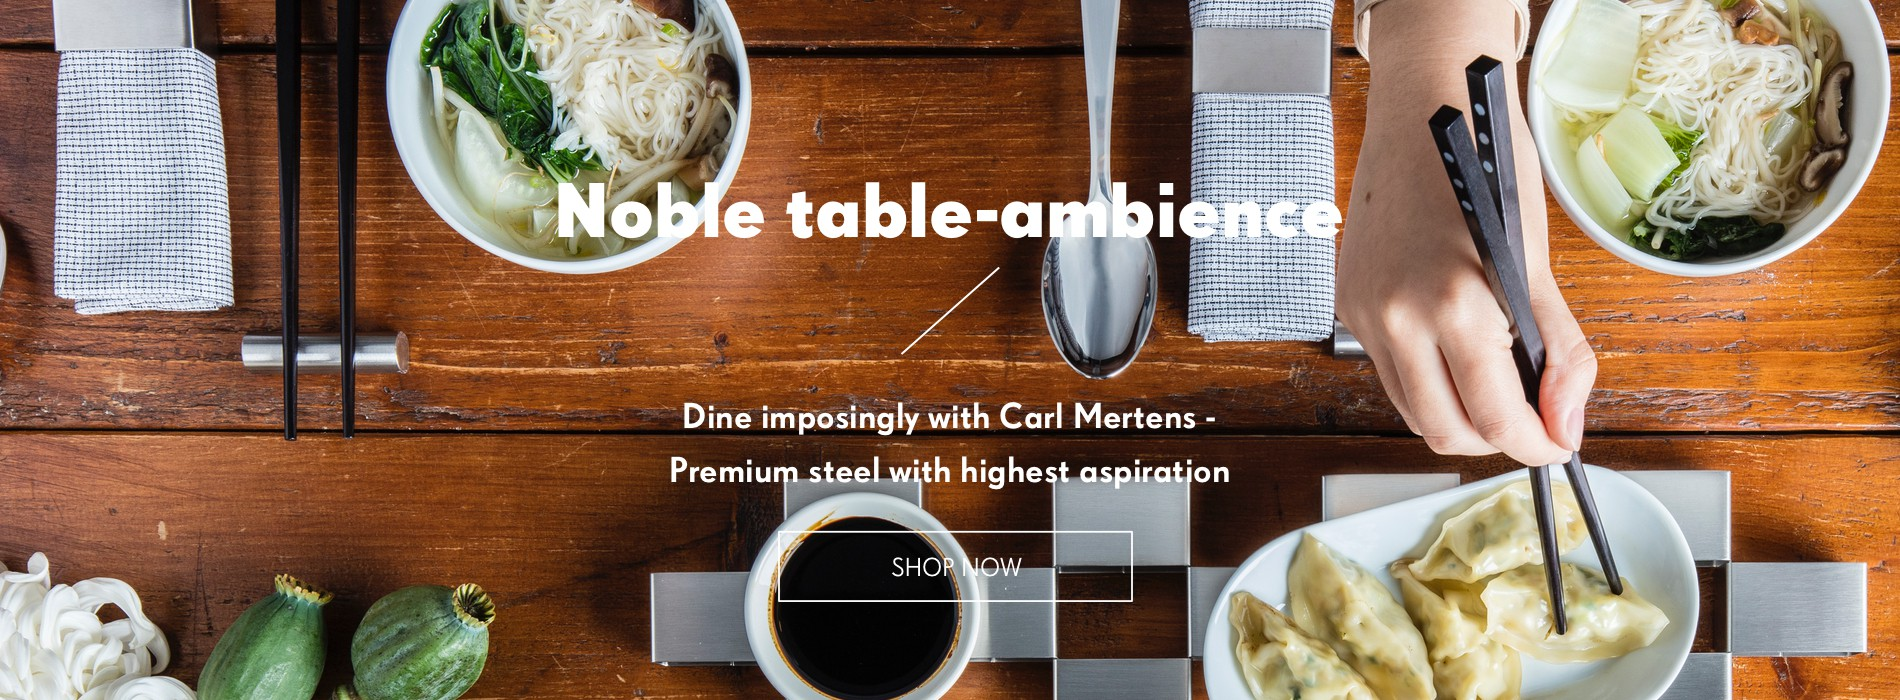 Noble table-ambience made in Solingen, Germany!